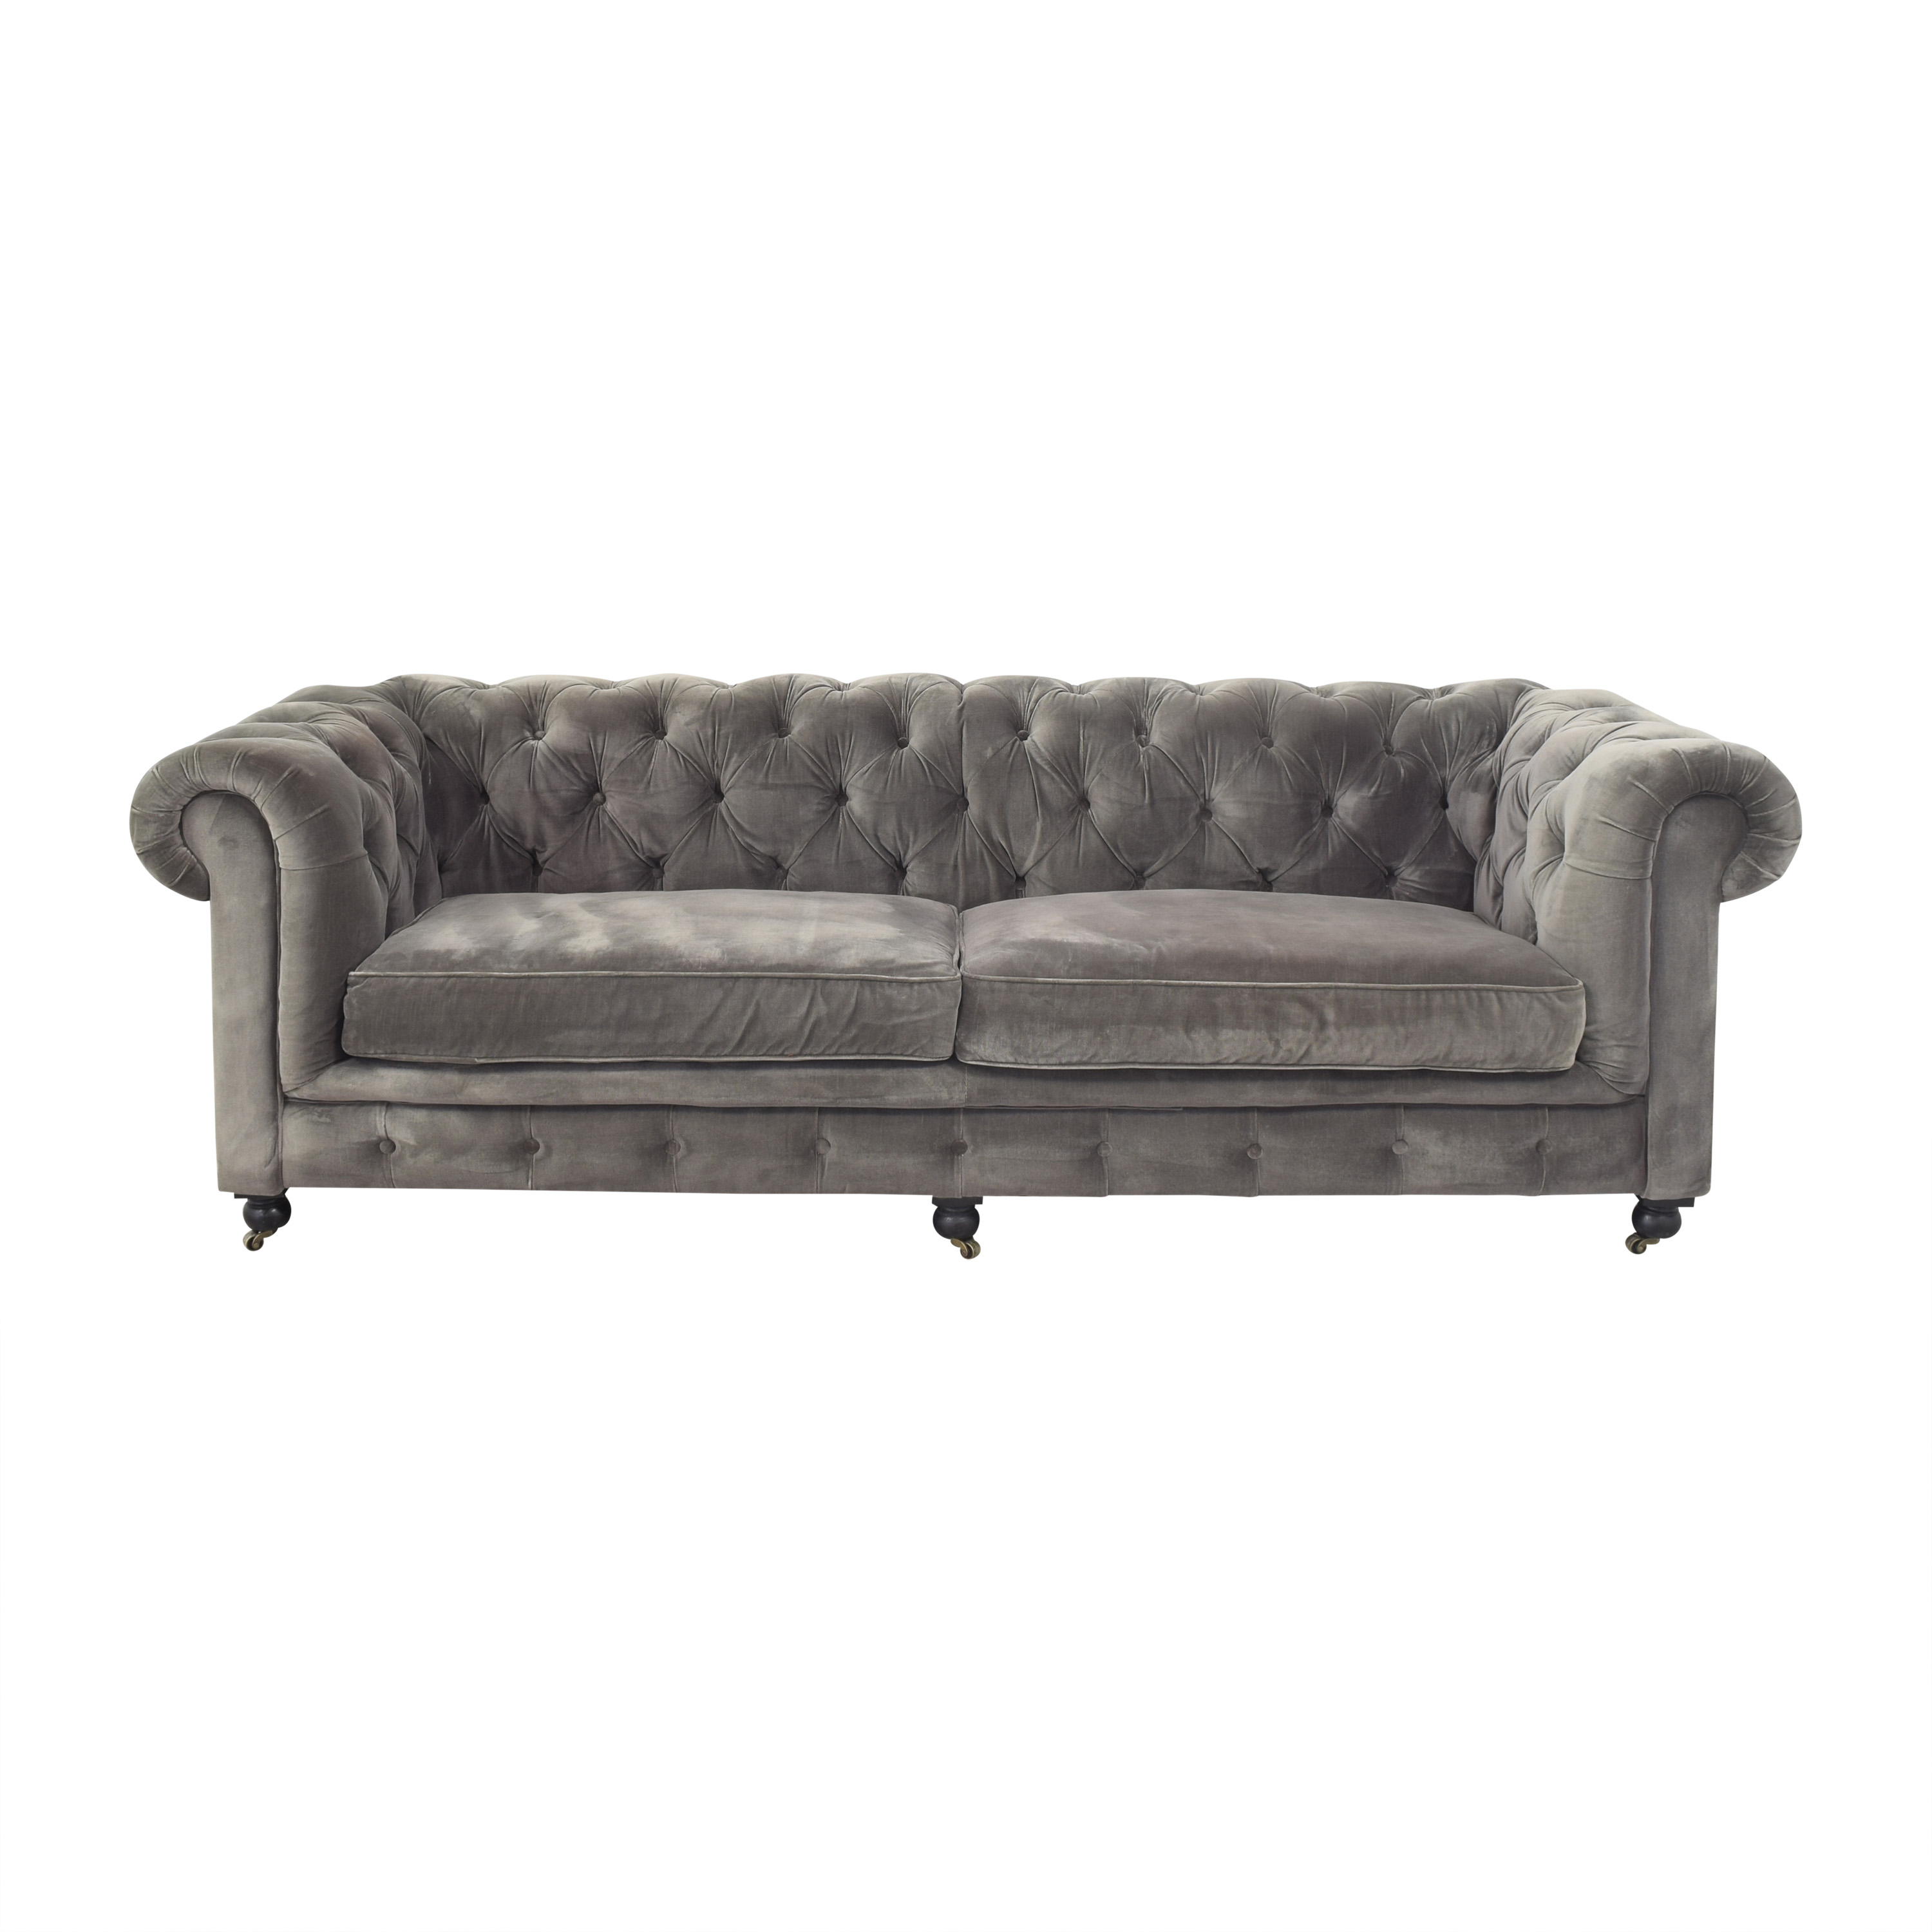 Restoration Hardware Restoration Hardware Kensington Chesterfield Sofa on sale